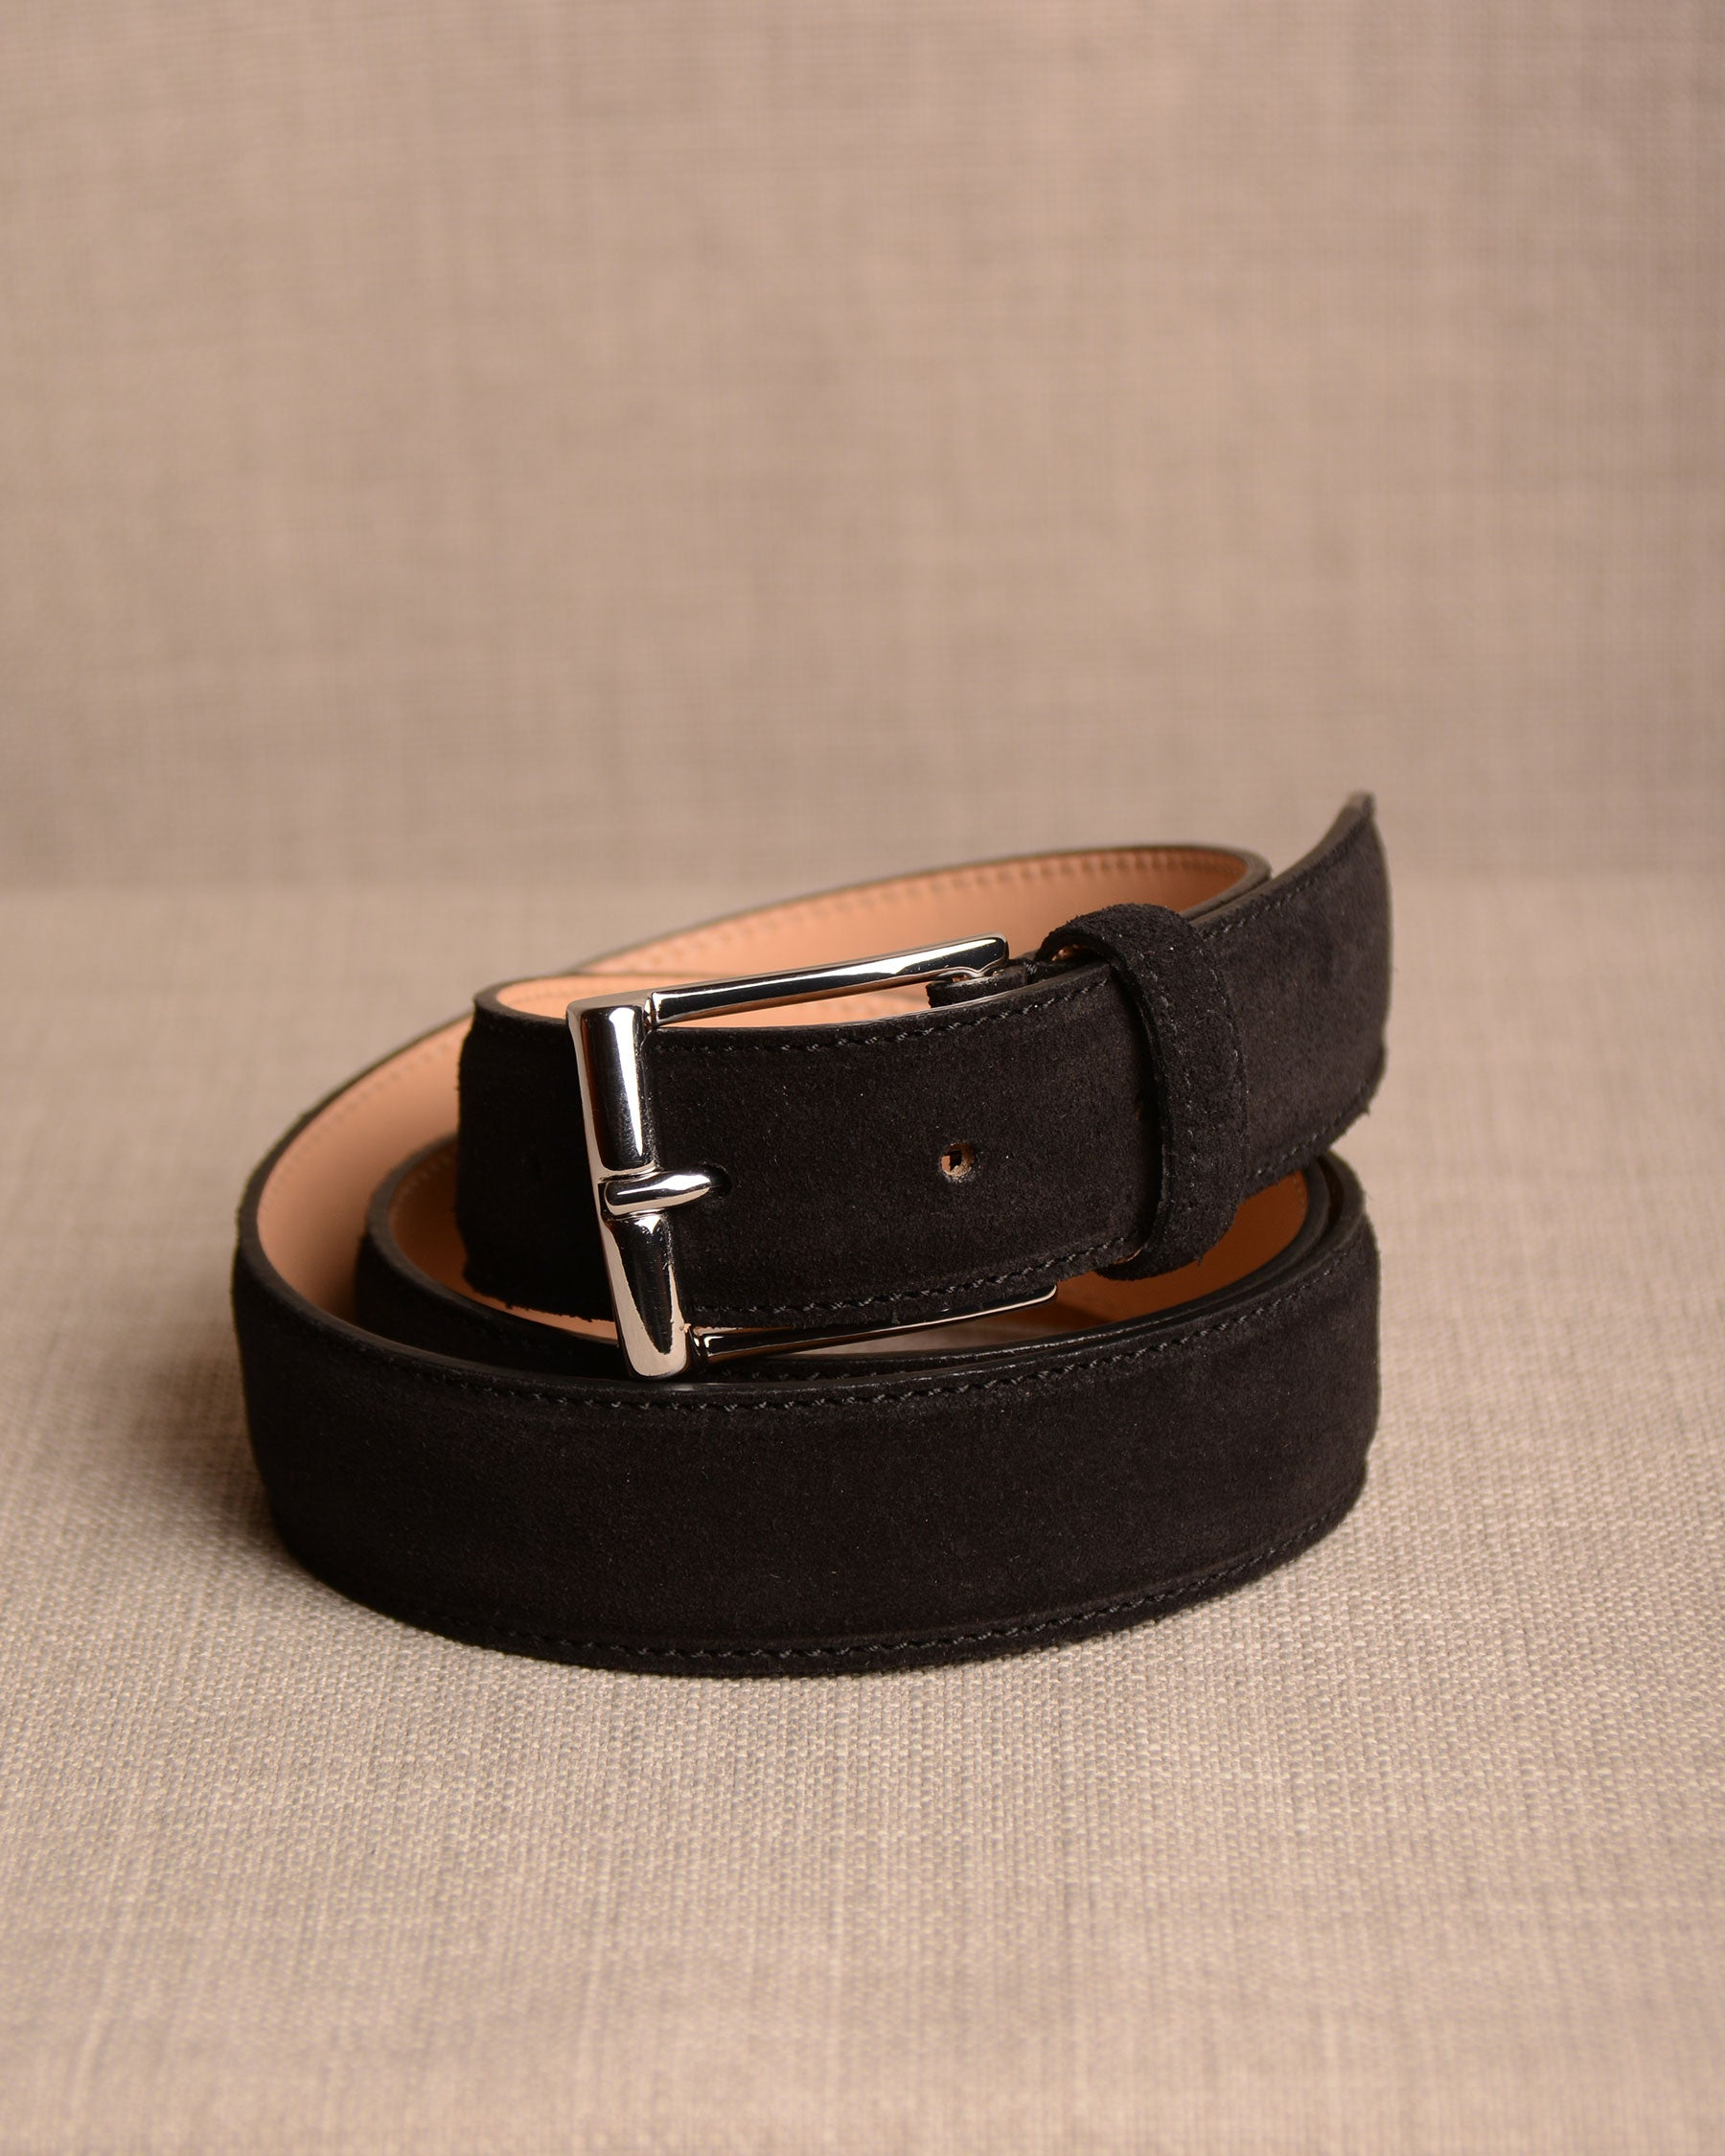 Crockett & Jones - Belt Black Suede